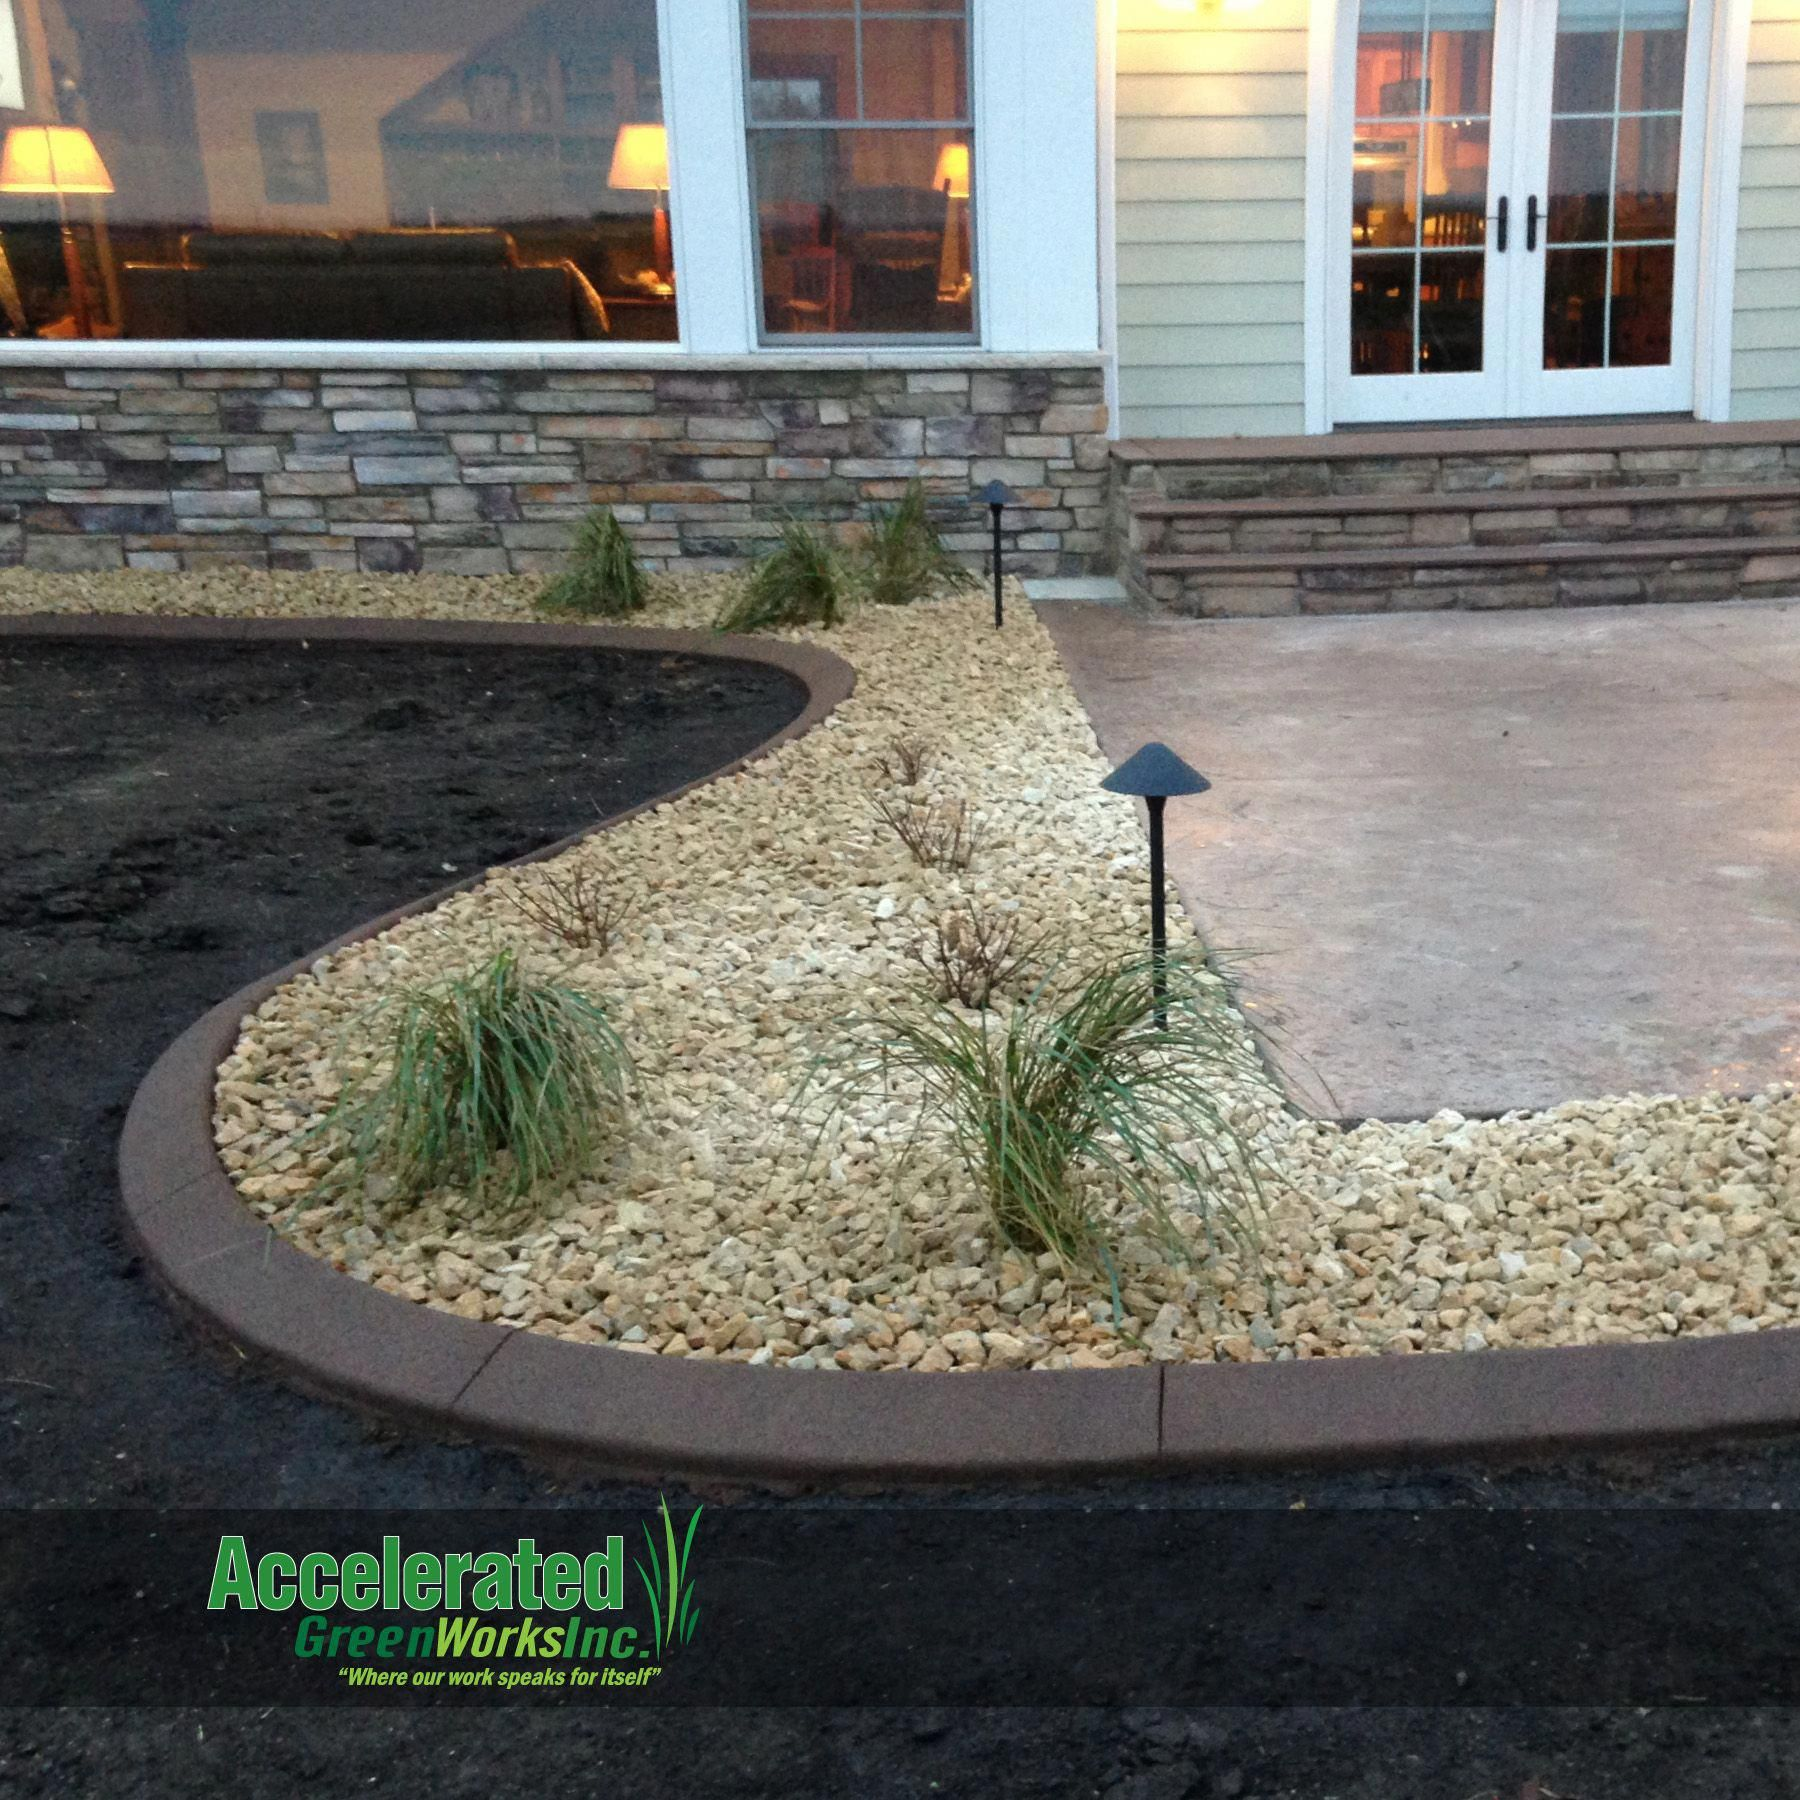 With the thickness of concrete curb edging, it is able to